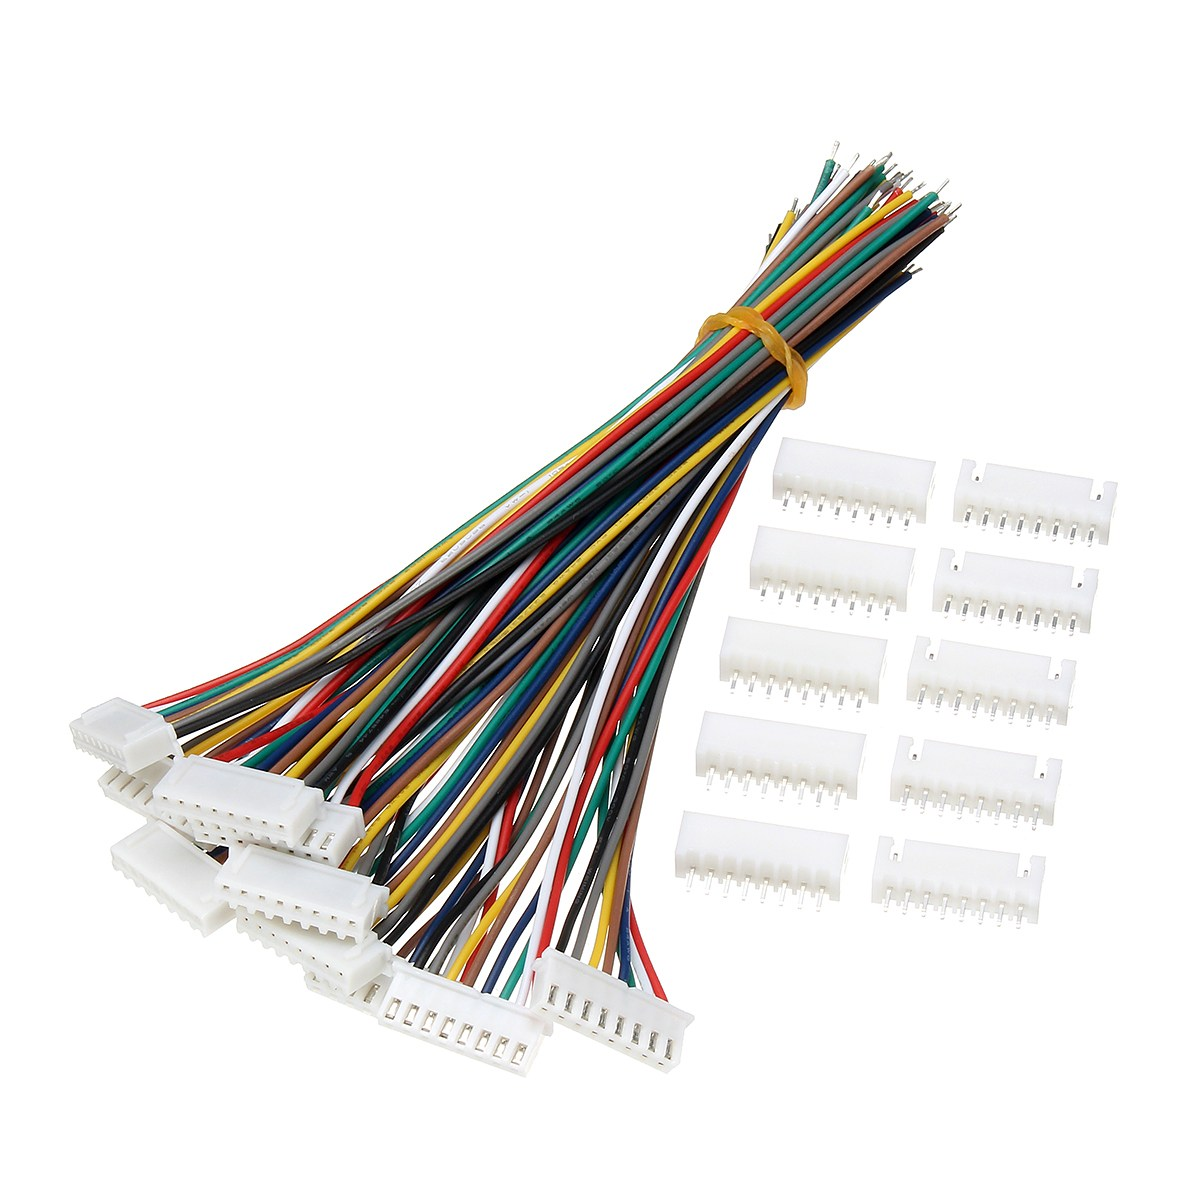 10 sets mini micro jst xh2 54mm 8 pin connector plug with wires 8 pin wiring [ 1200 x 1200 Pixel ]